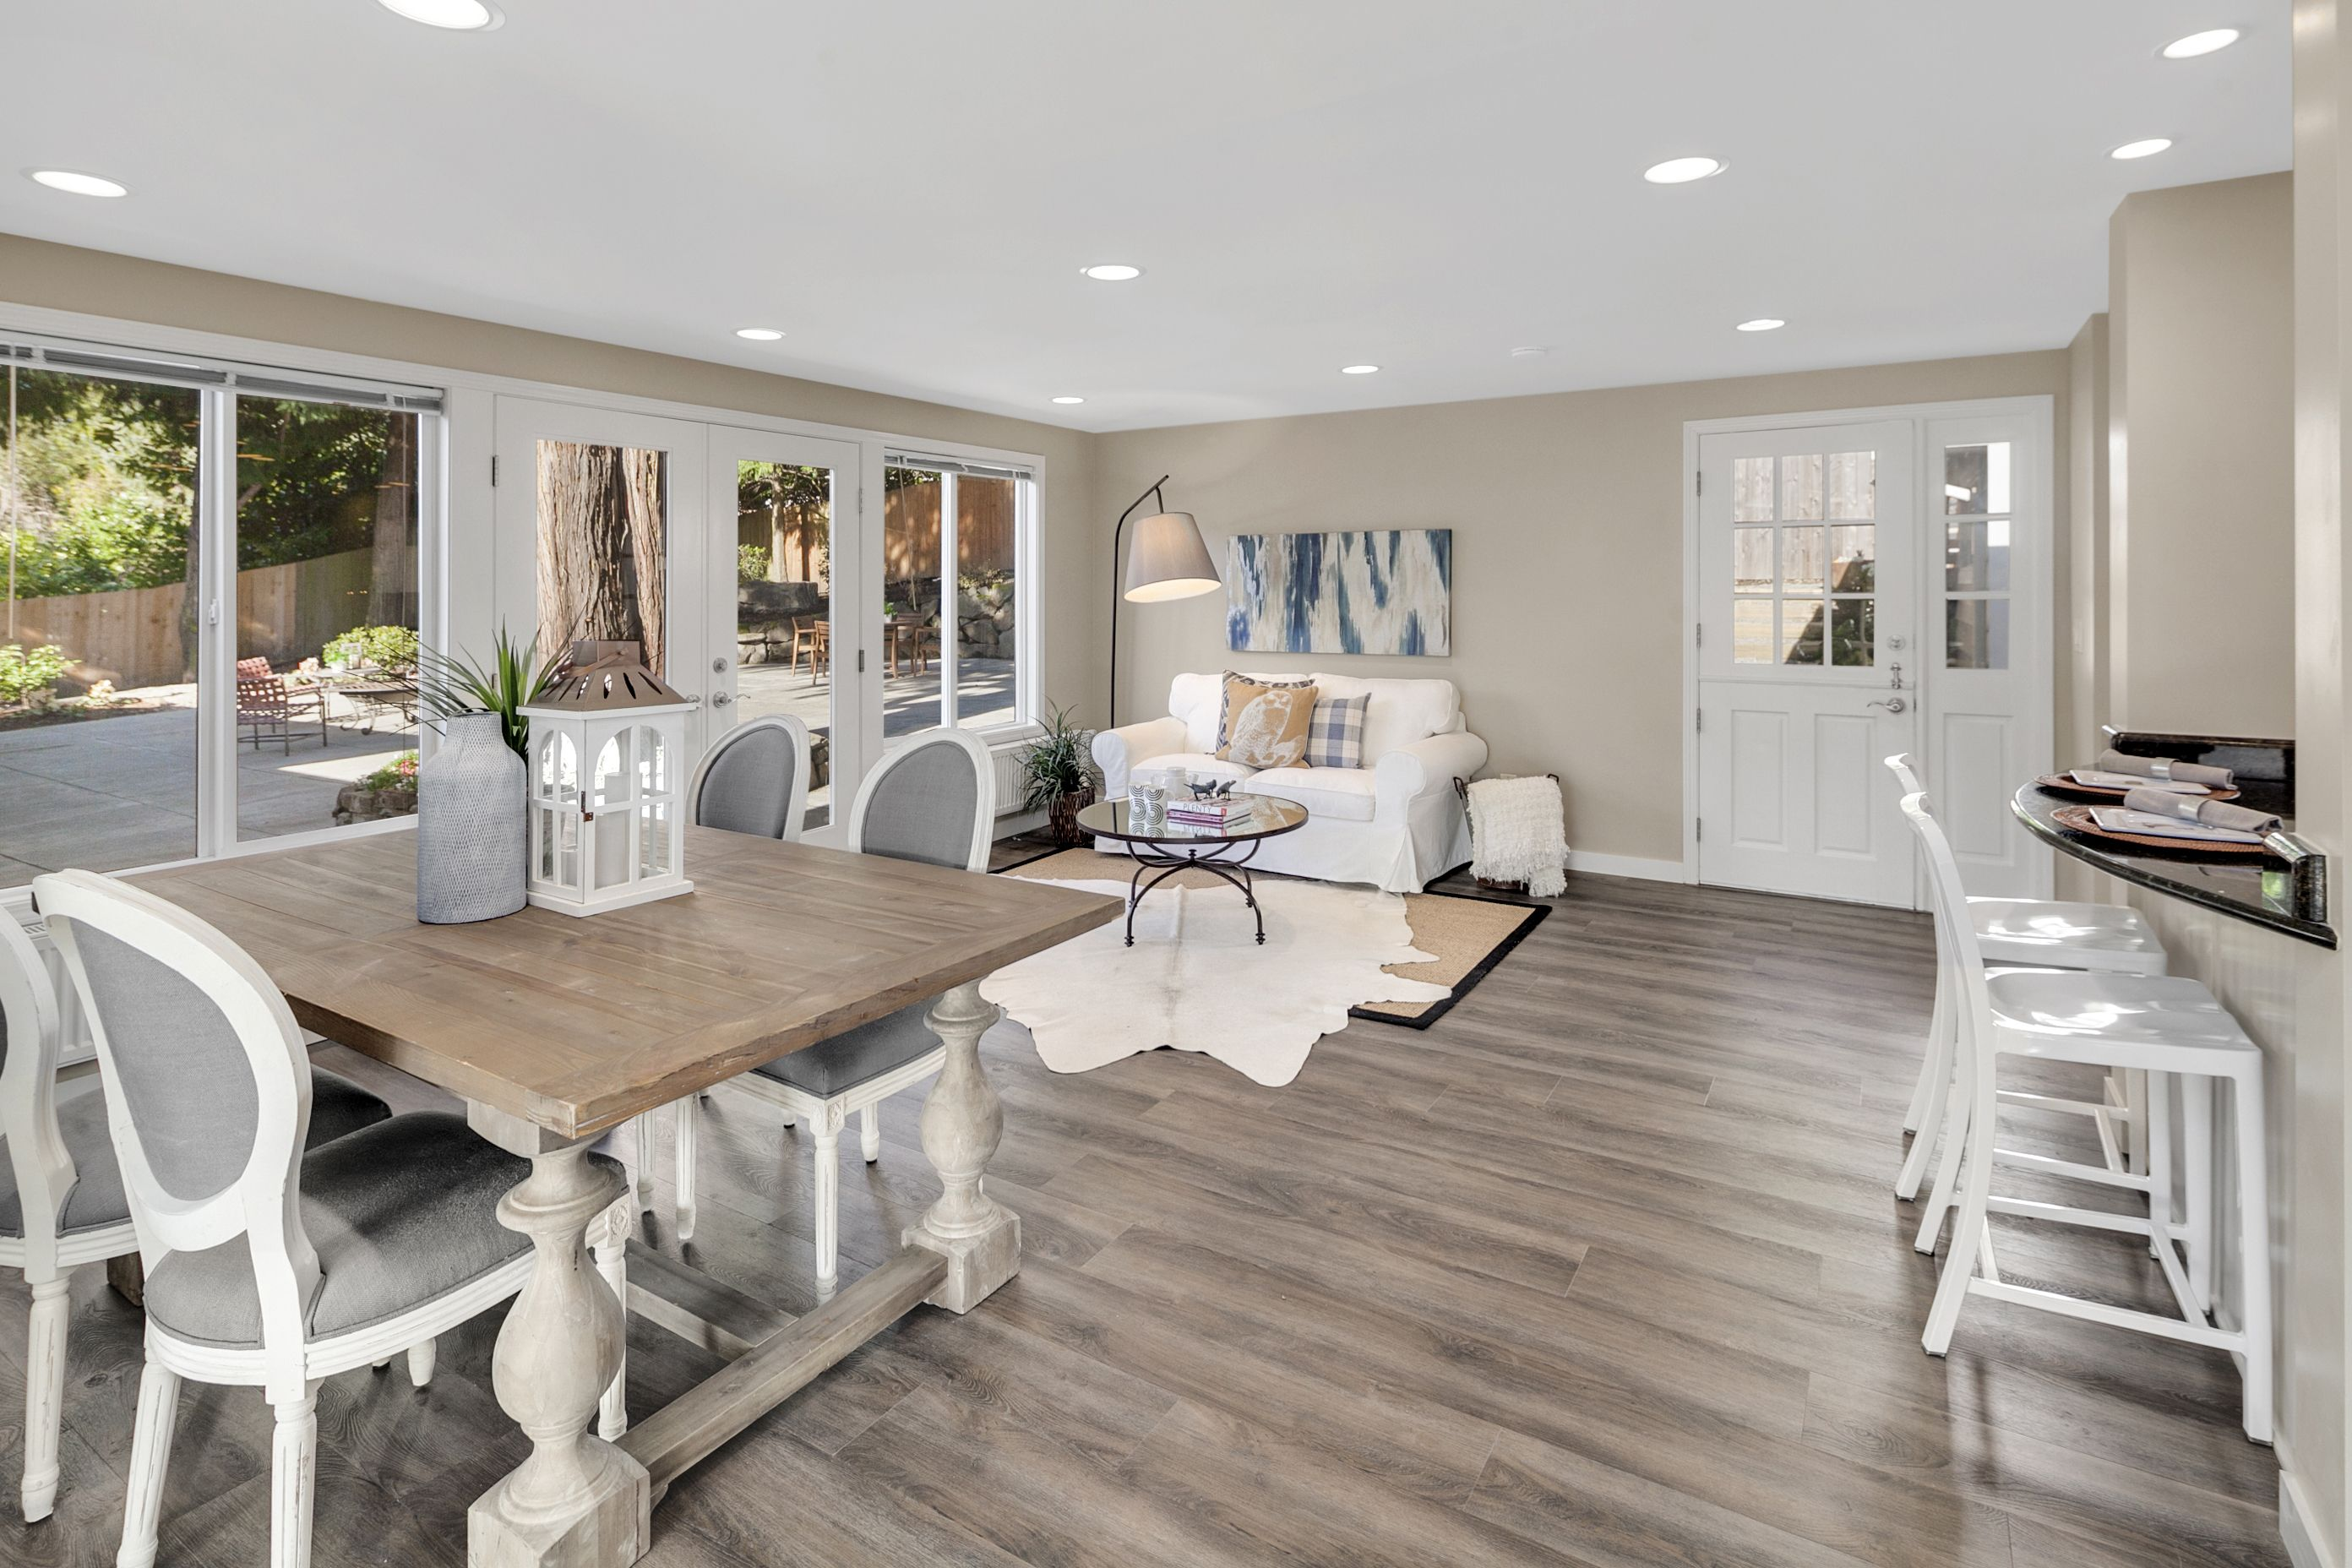 Wall color sw 9173 shiitake beautifully decorated open concept living space painted by amsberrys painting paint livingroom living sherwinwilliams